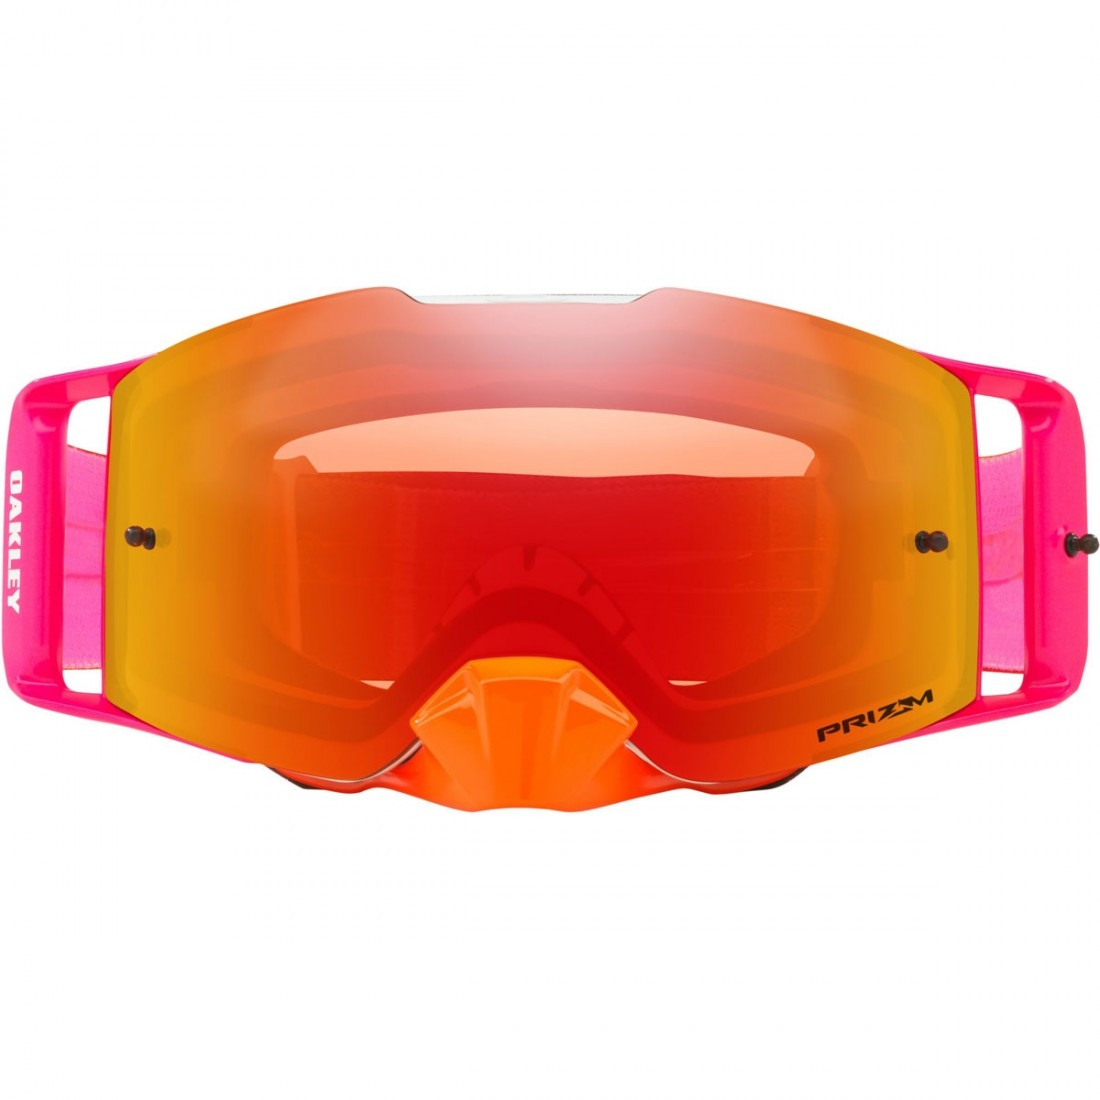 d3017e48aad OAKLEY Front Line Pinned Race Orange   Red   Prizm Mx Torch Goggles ...